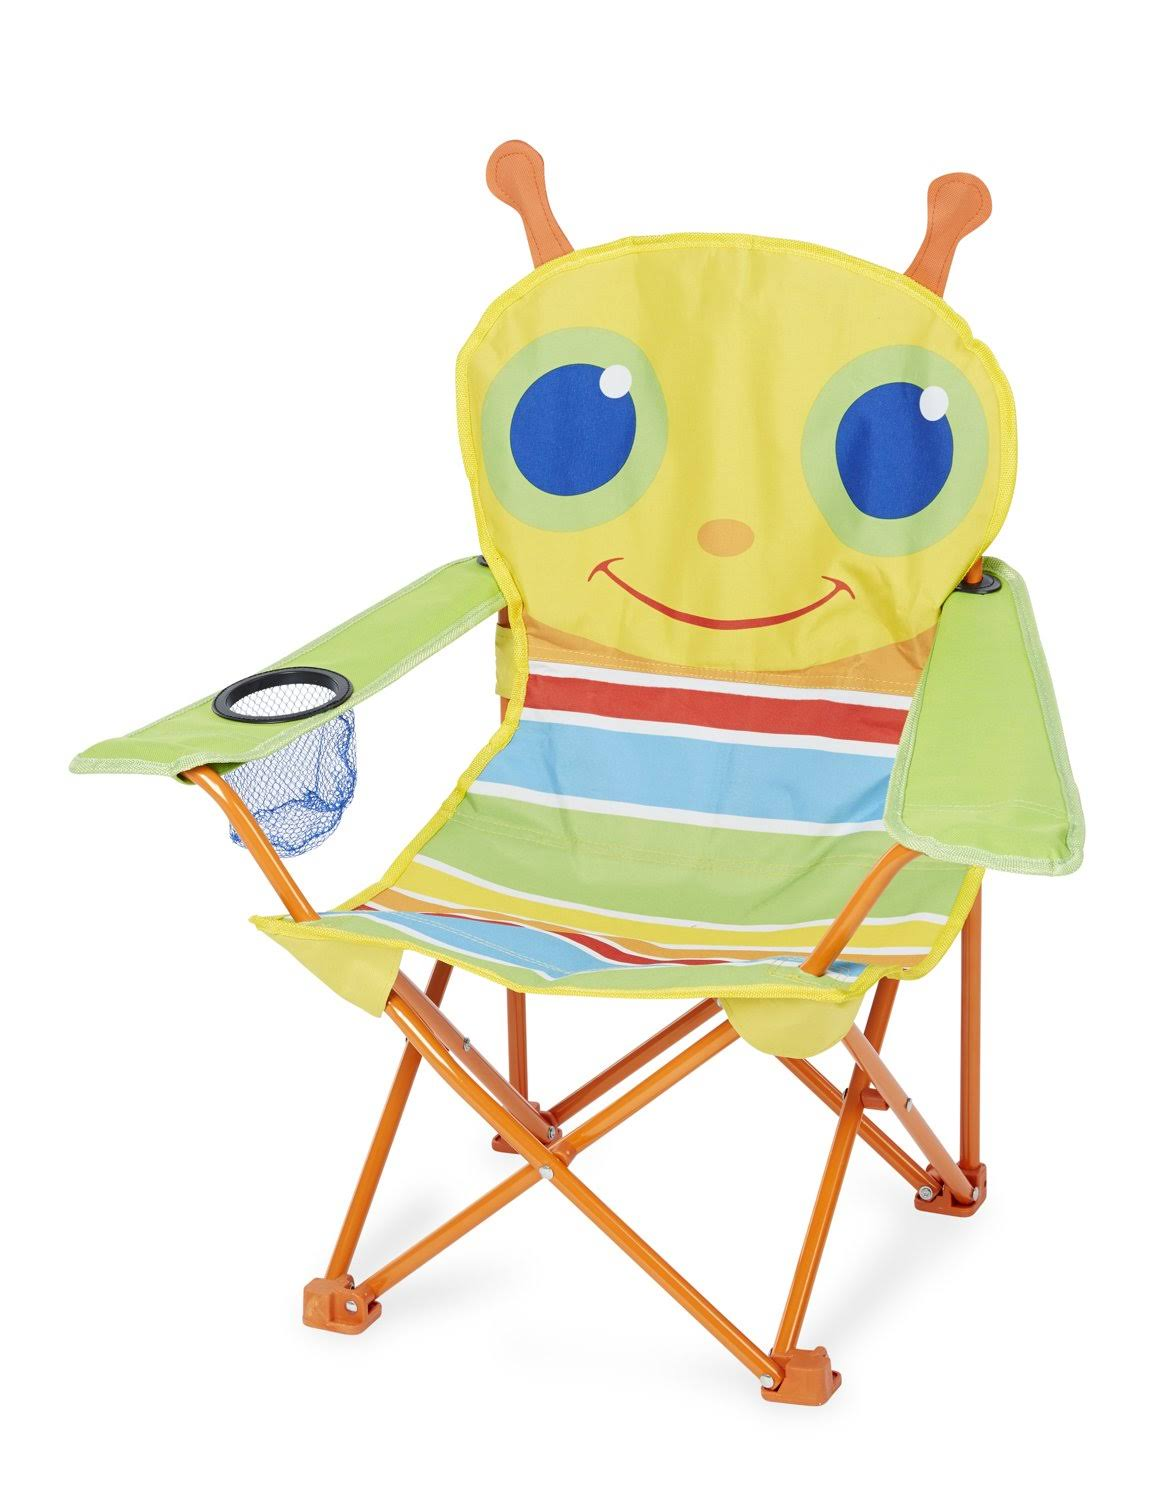 Melissa and Doug Sunny Patch Giddy Buggy Folding Lawn and Camping Chair